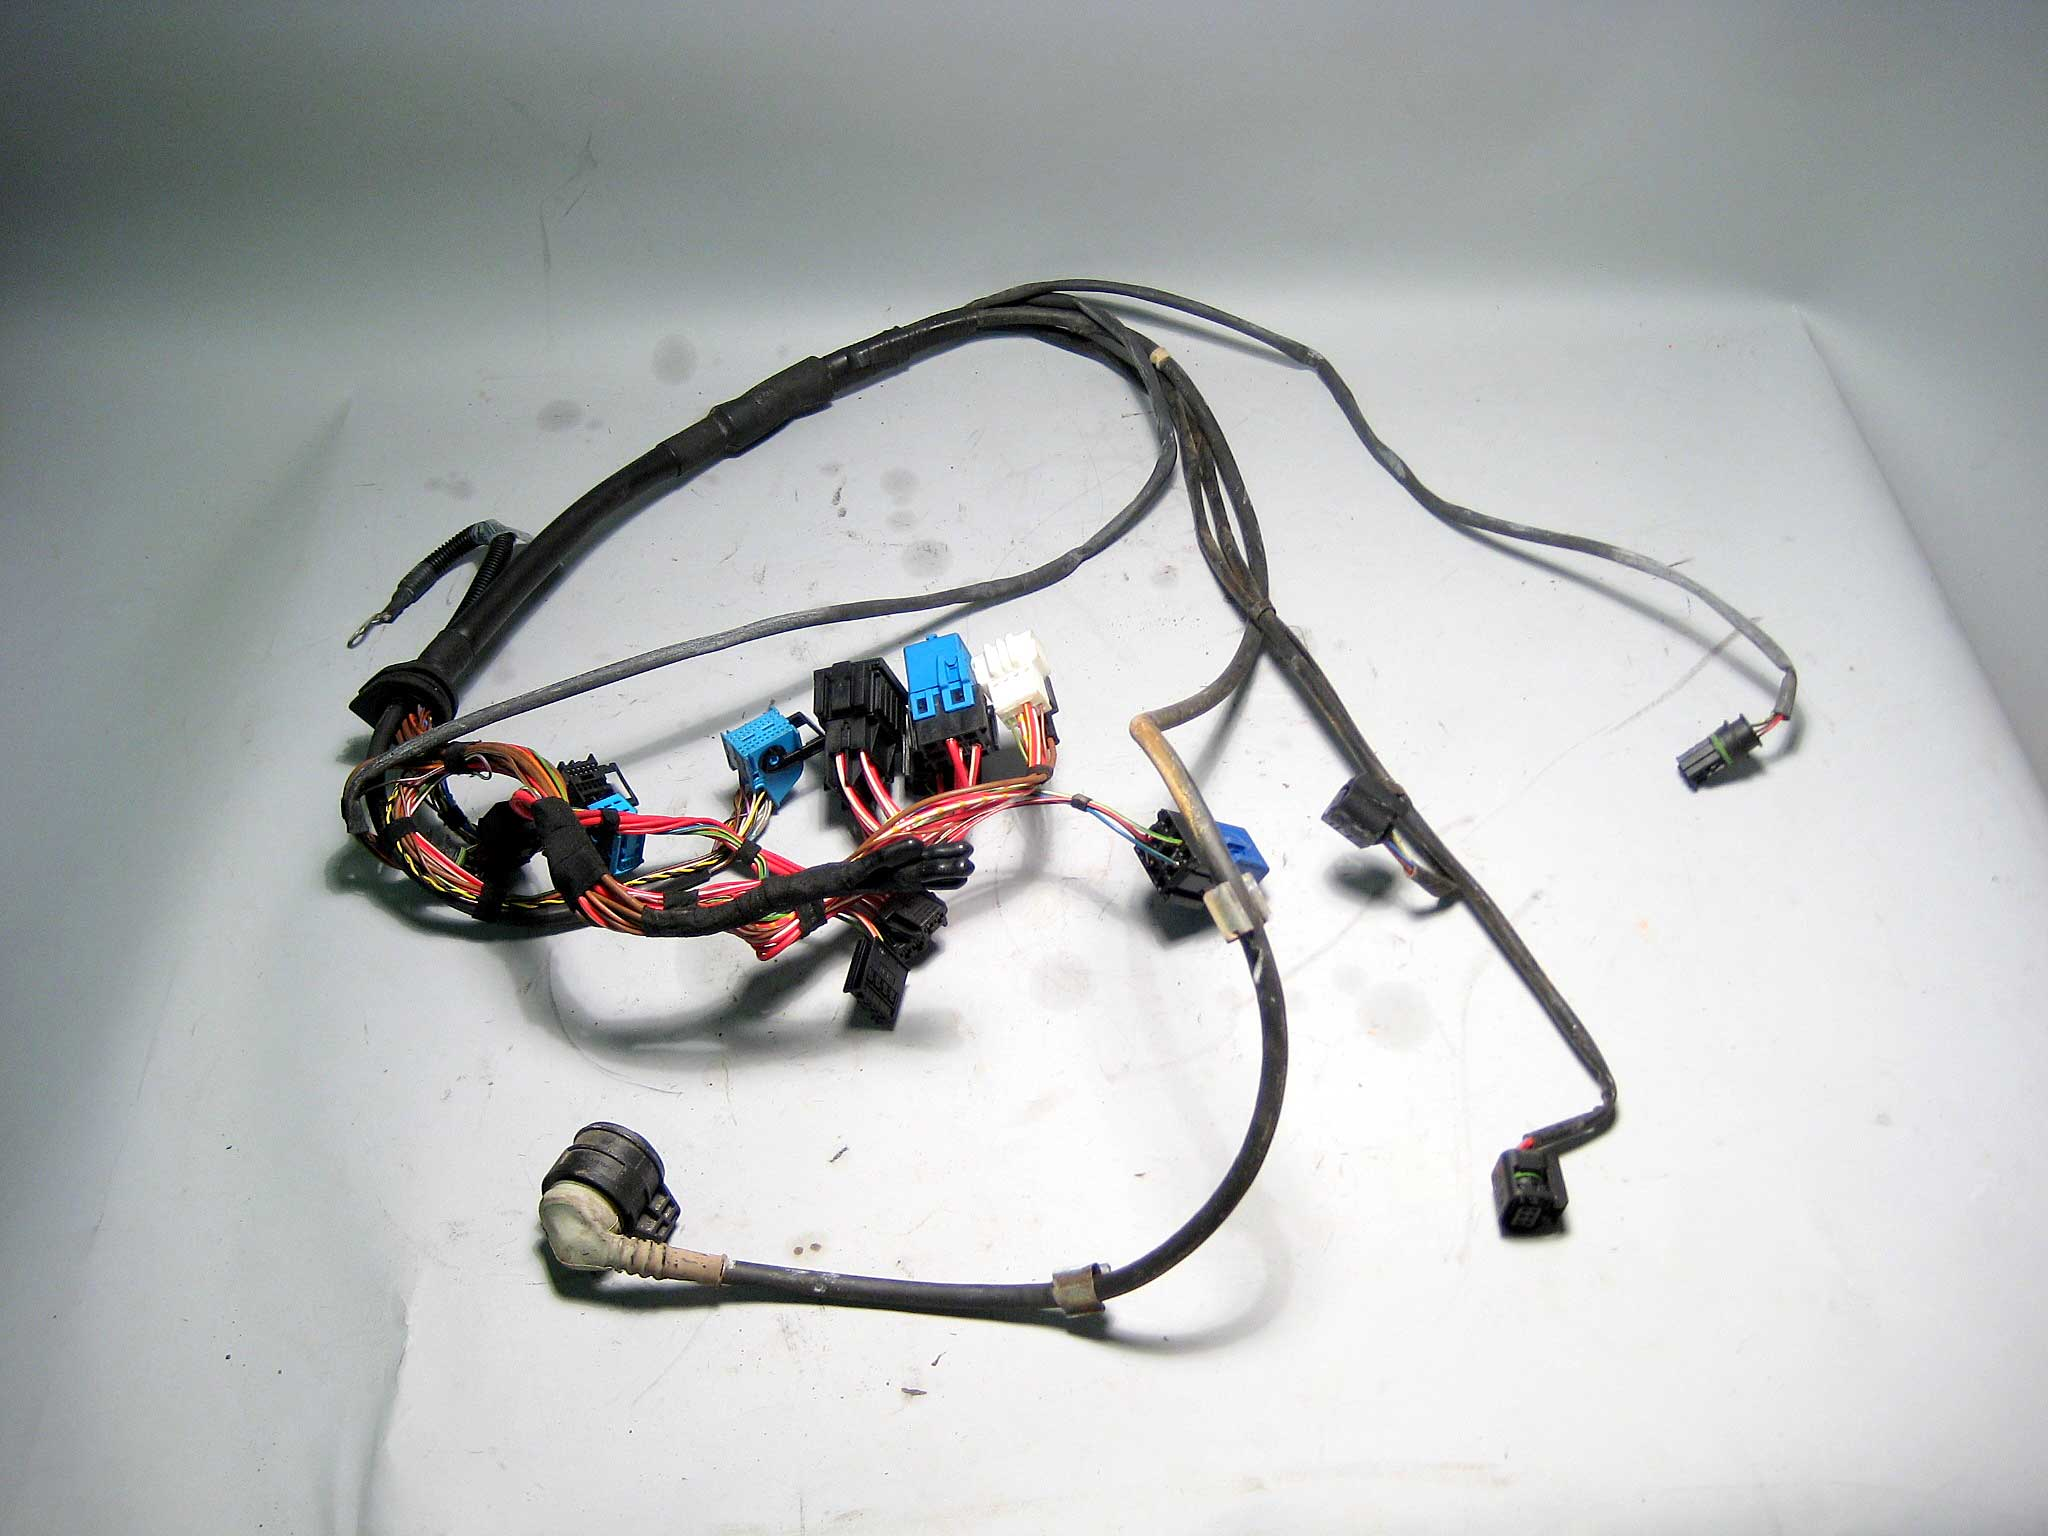 E46 transmission wiring harness wiring info bmw e46 automatic transmission wiring harness 3 03 2003 2006 oem rh ebay com transmission wiring harness diagram bmw e46 transmission wiring harness asfbconference2016 Images